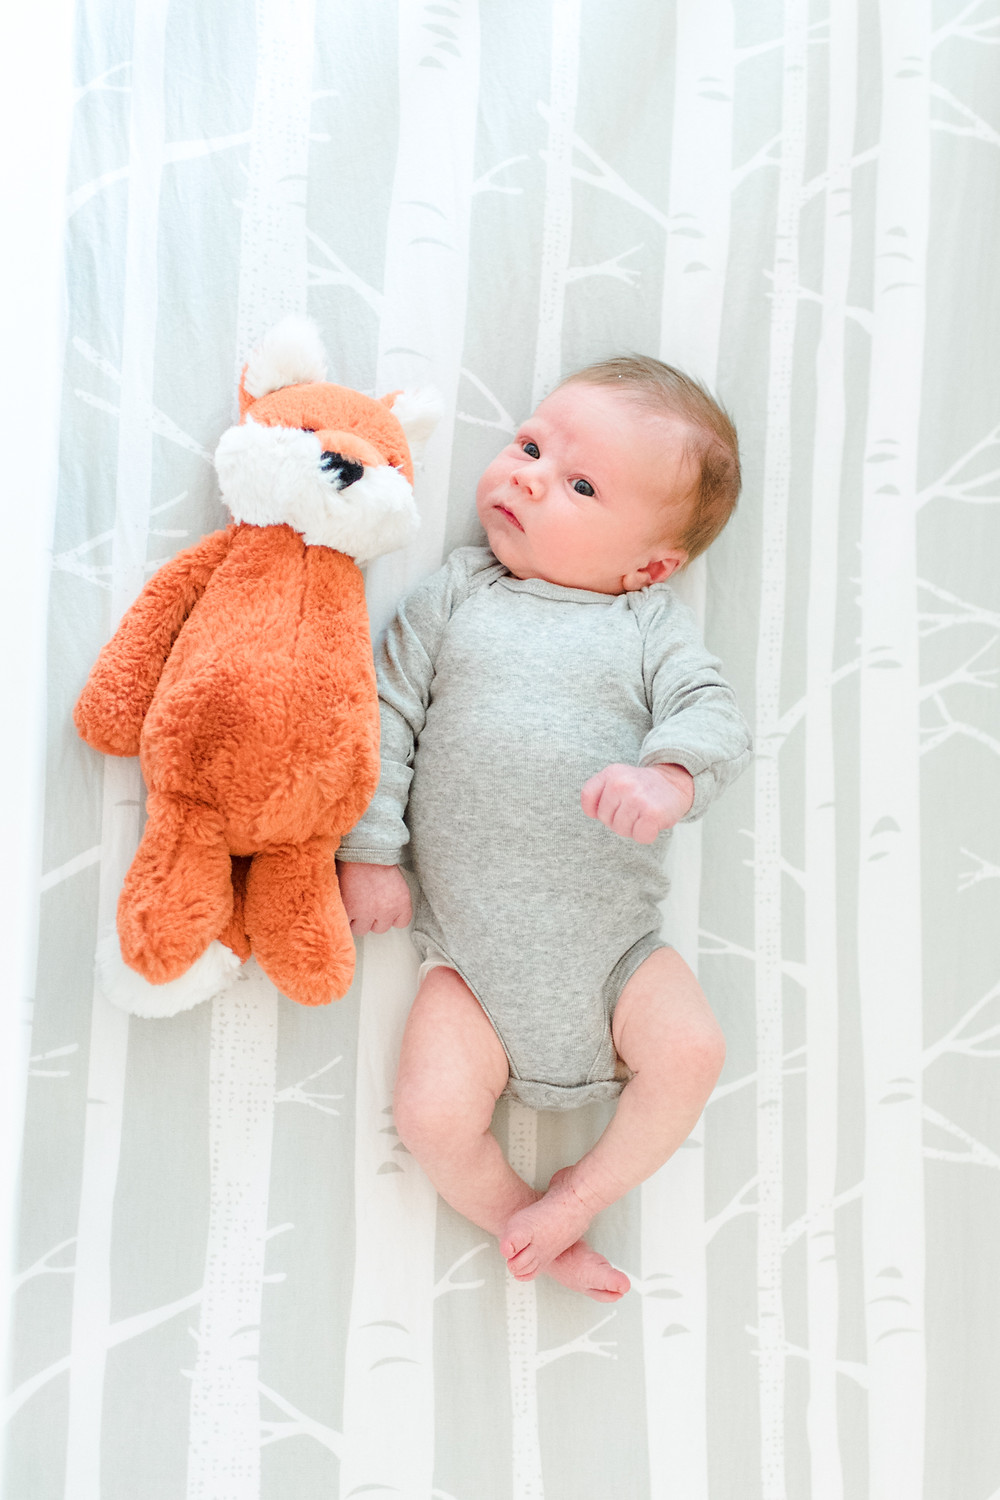 in-home newborn lifestyle photography | ponte vedra, jacksonville, jax, nocatee, st augustine, florida | colleen lindhurst photography